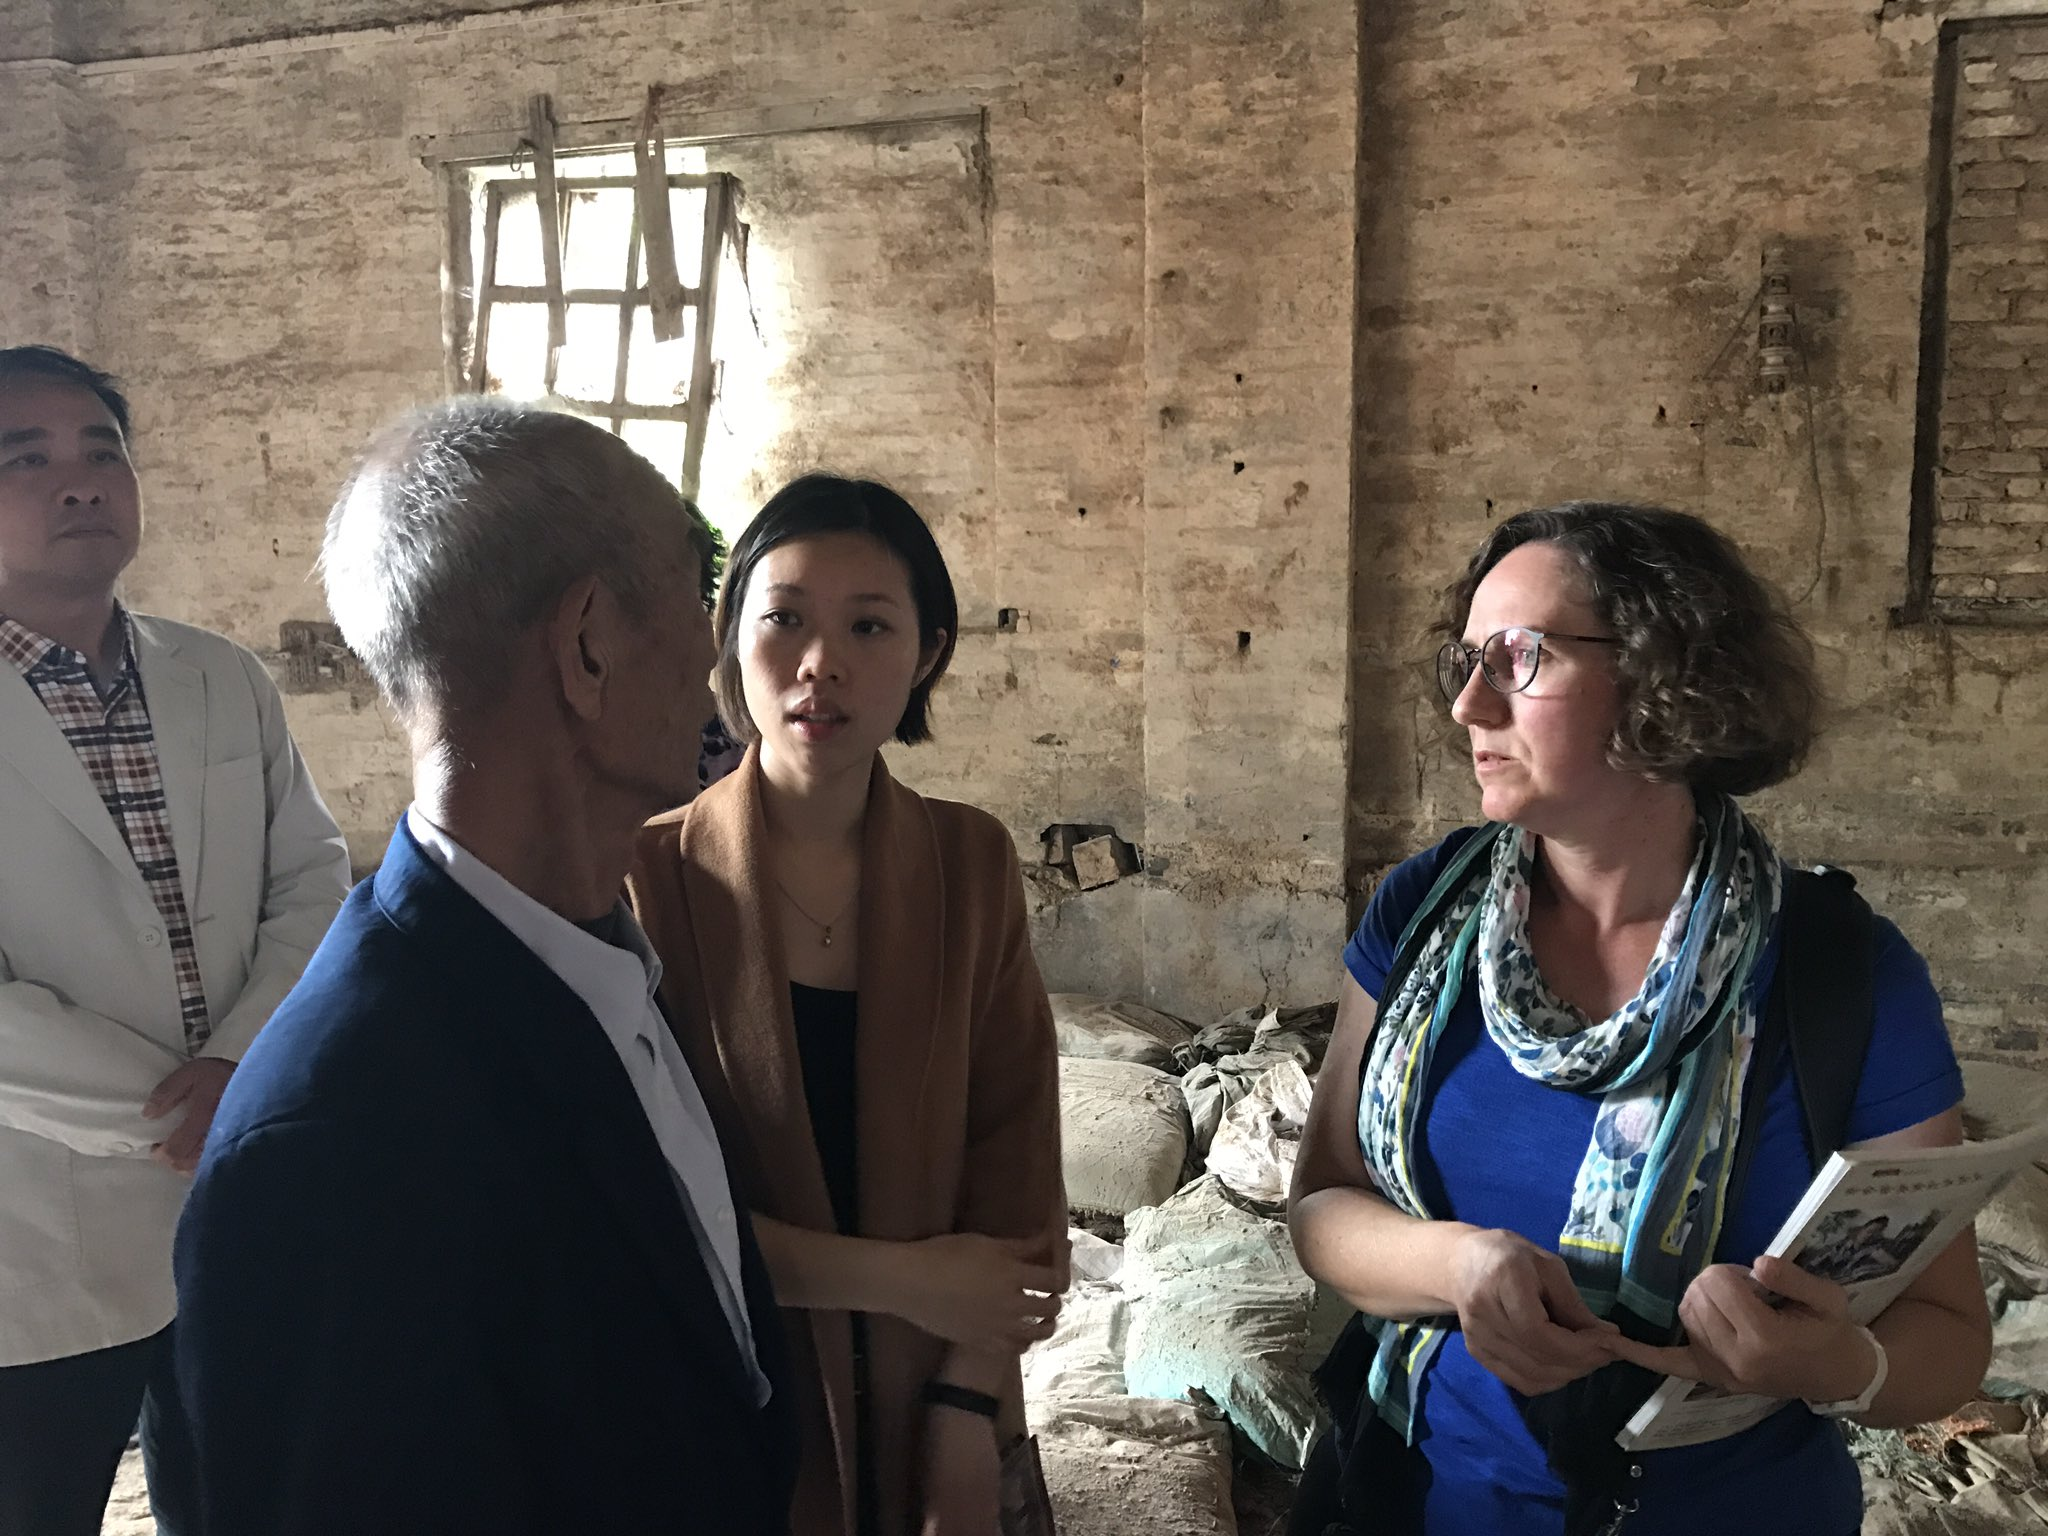 And @baibi in Minahan's village with Grandpa Chan and his granddaughter Dorrie #cahht17 https://t.co/ESGVHcofMl